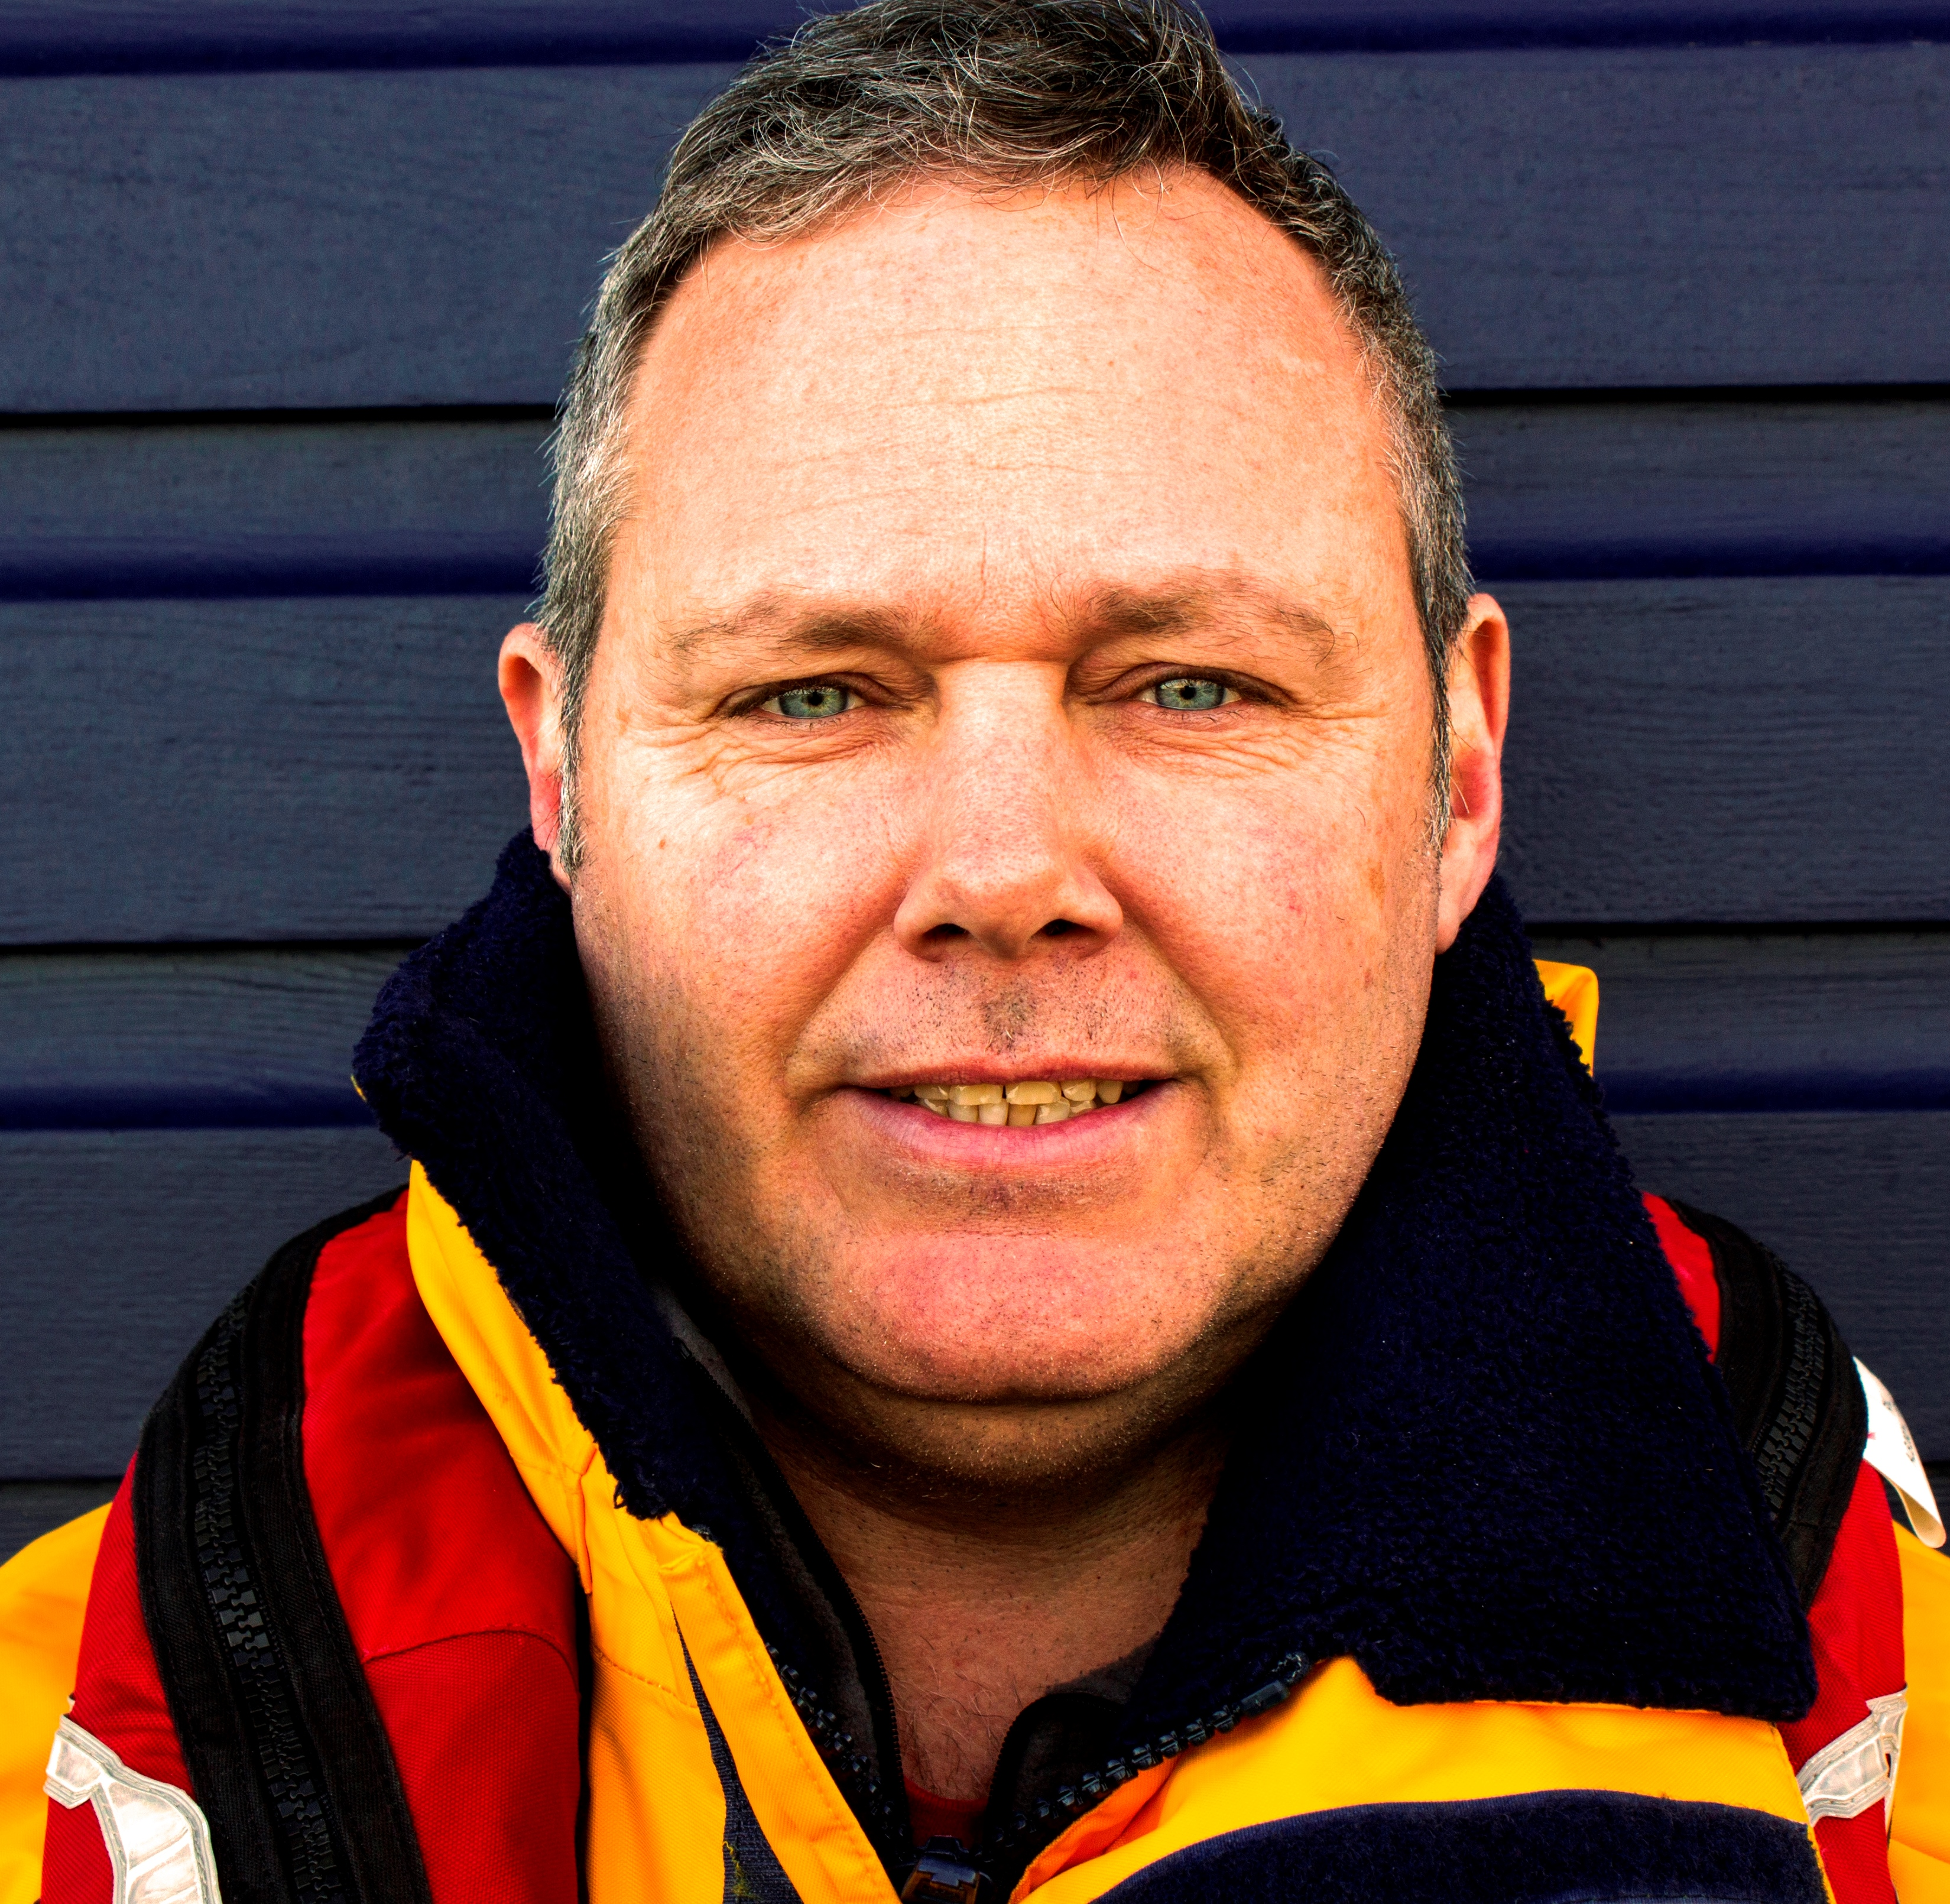 Army veteran turned RNLI volunteer